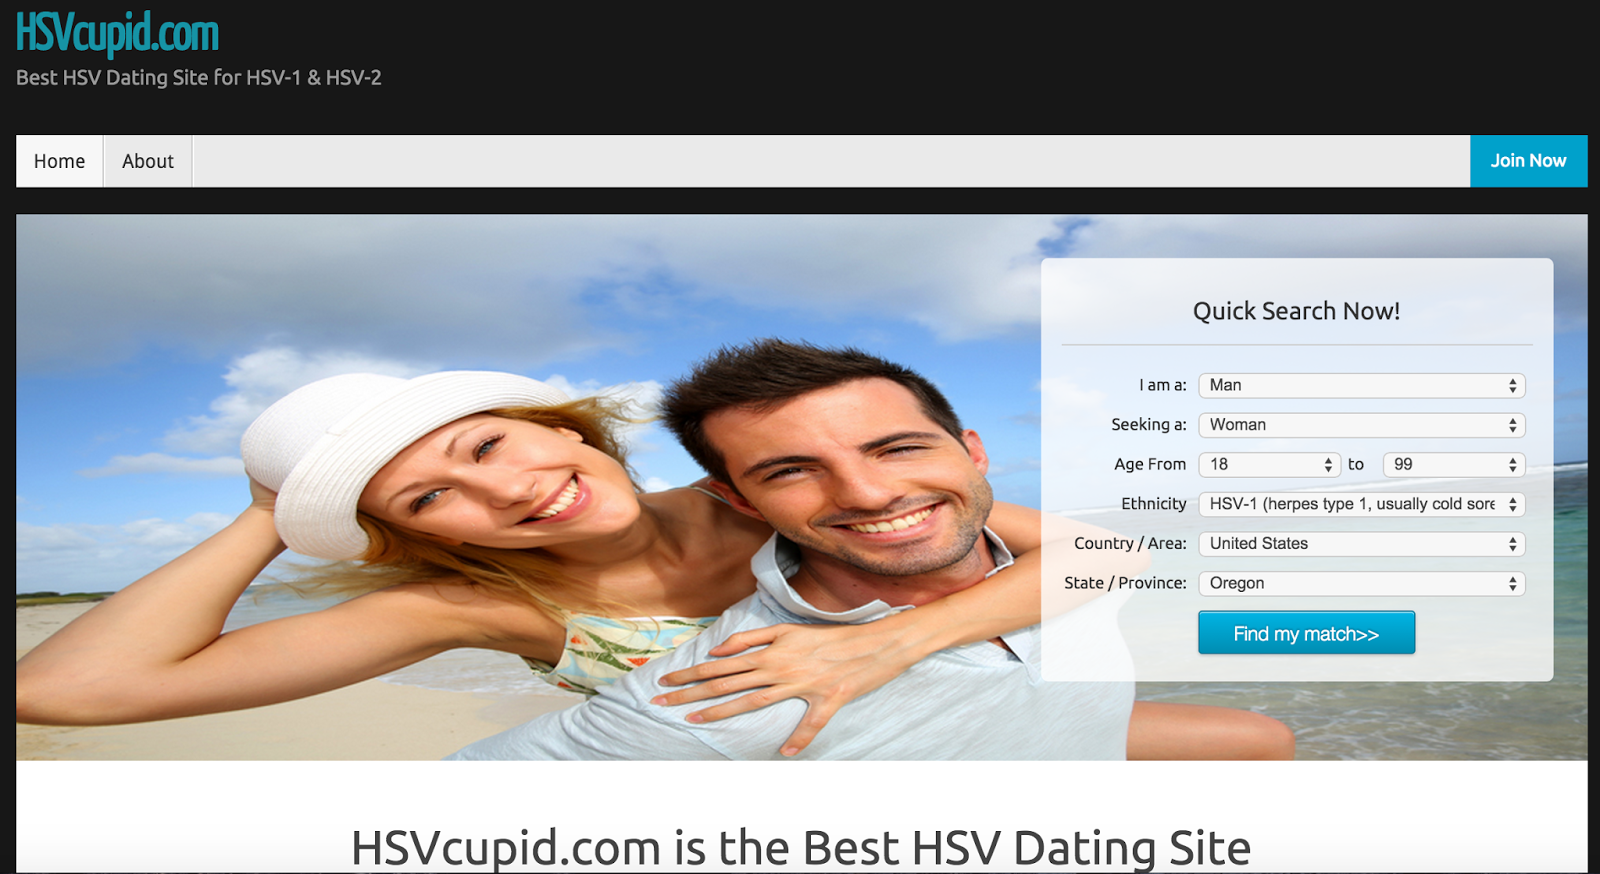 23 Best Free Positive Dating Sites (For HIV Herpes & Other STDs)